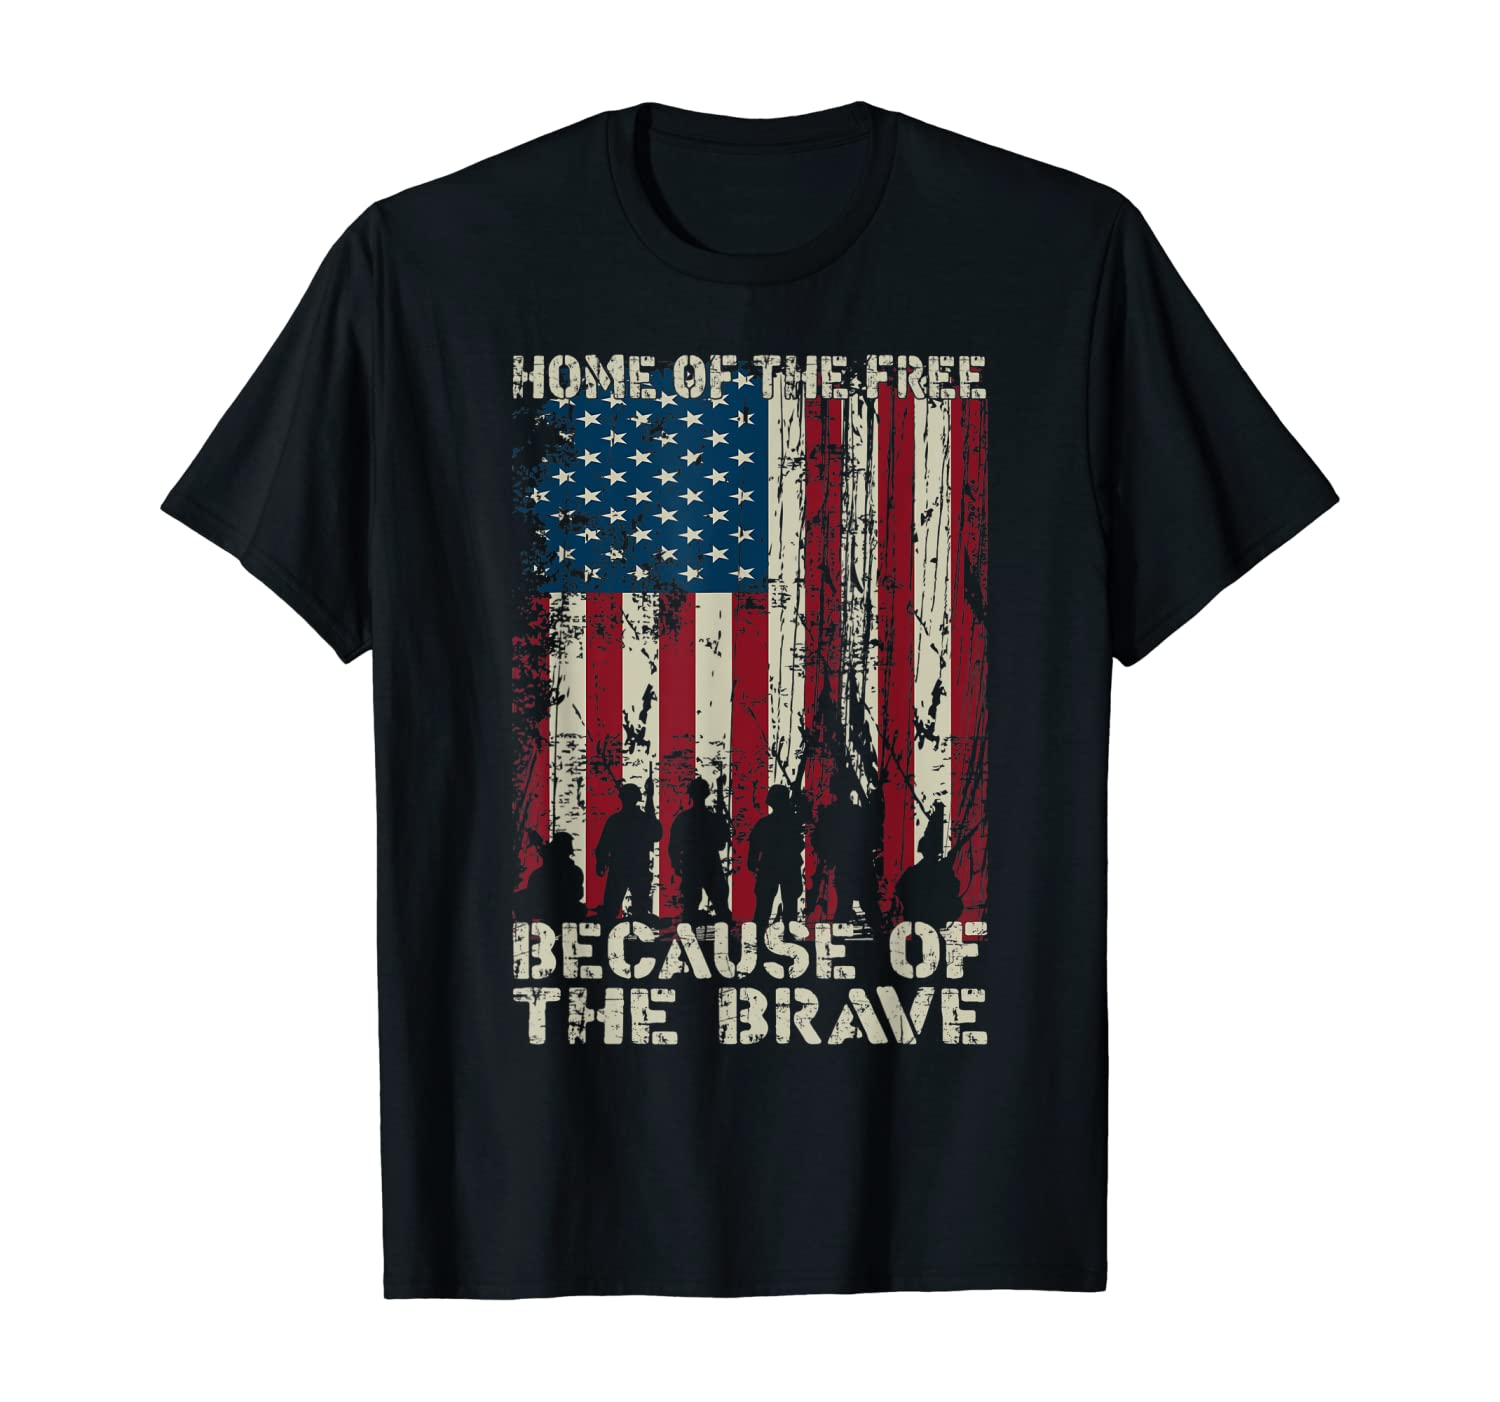 Top 10 Land Of The Free Home Of The Brave